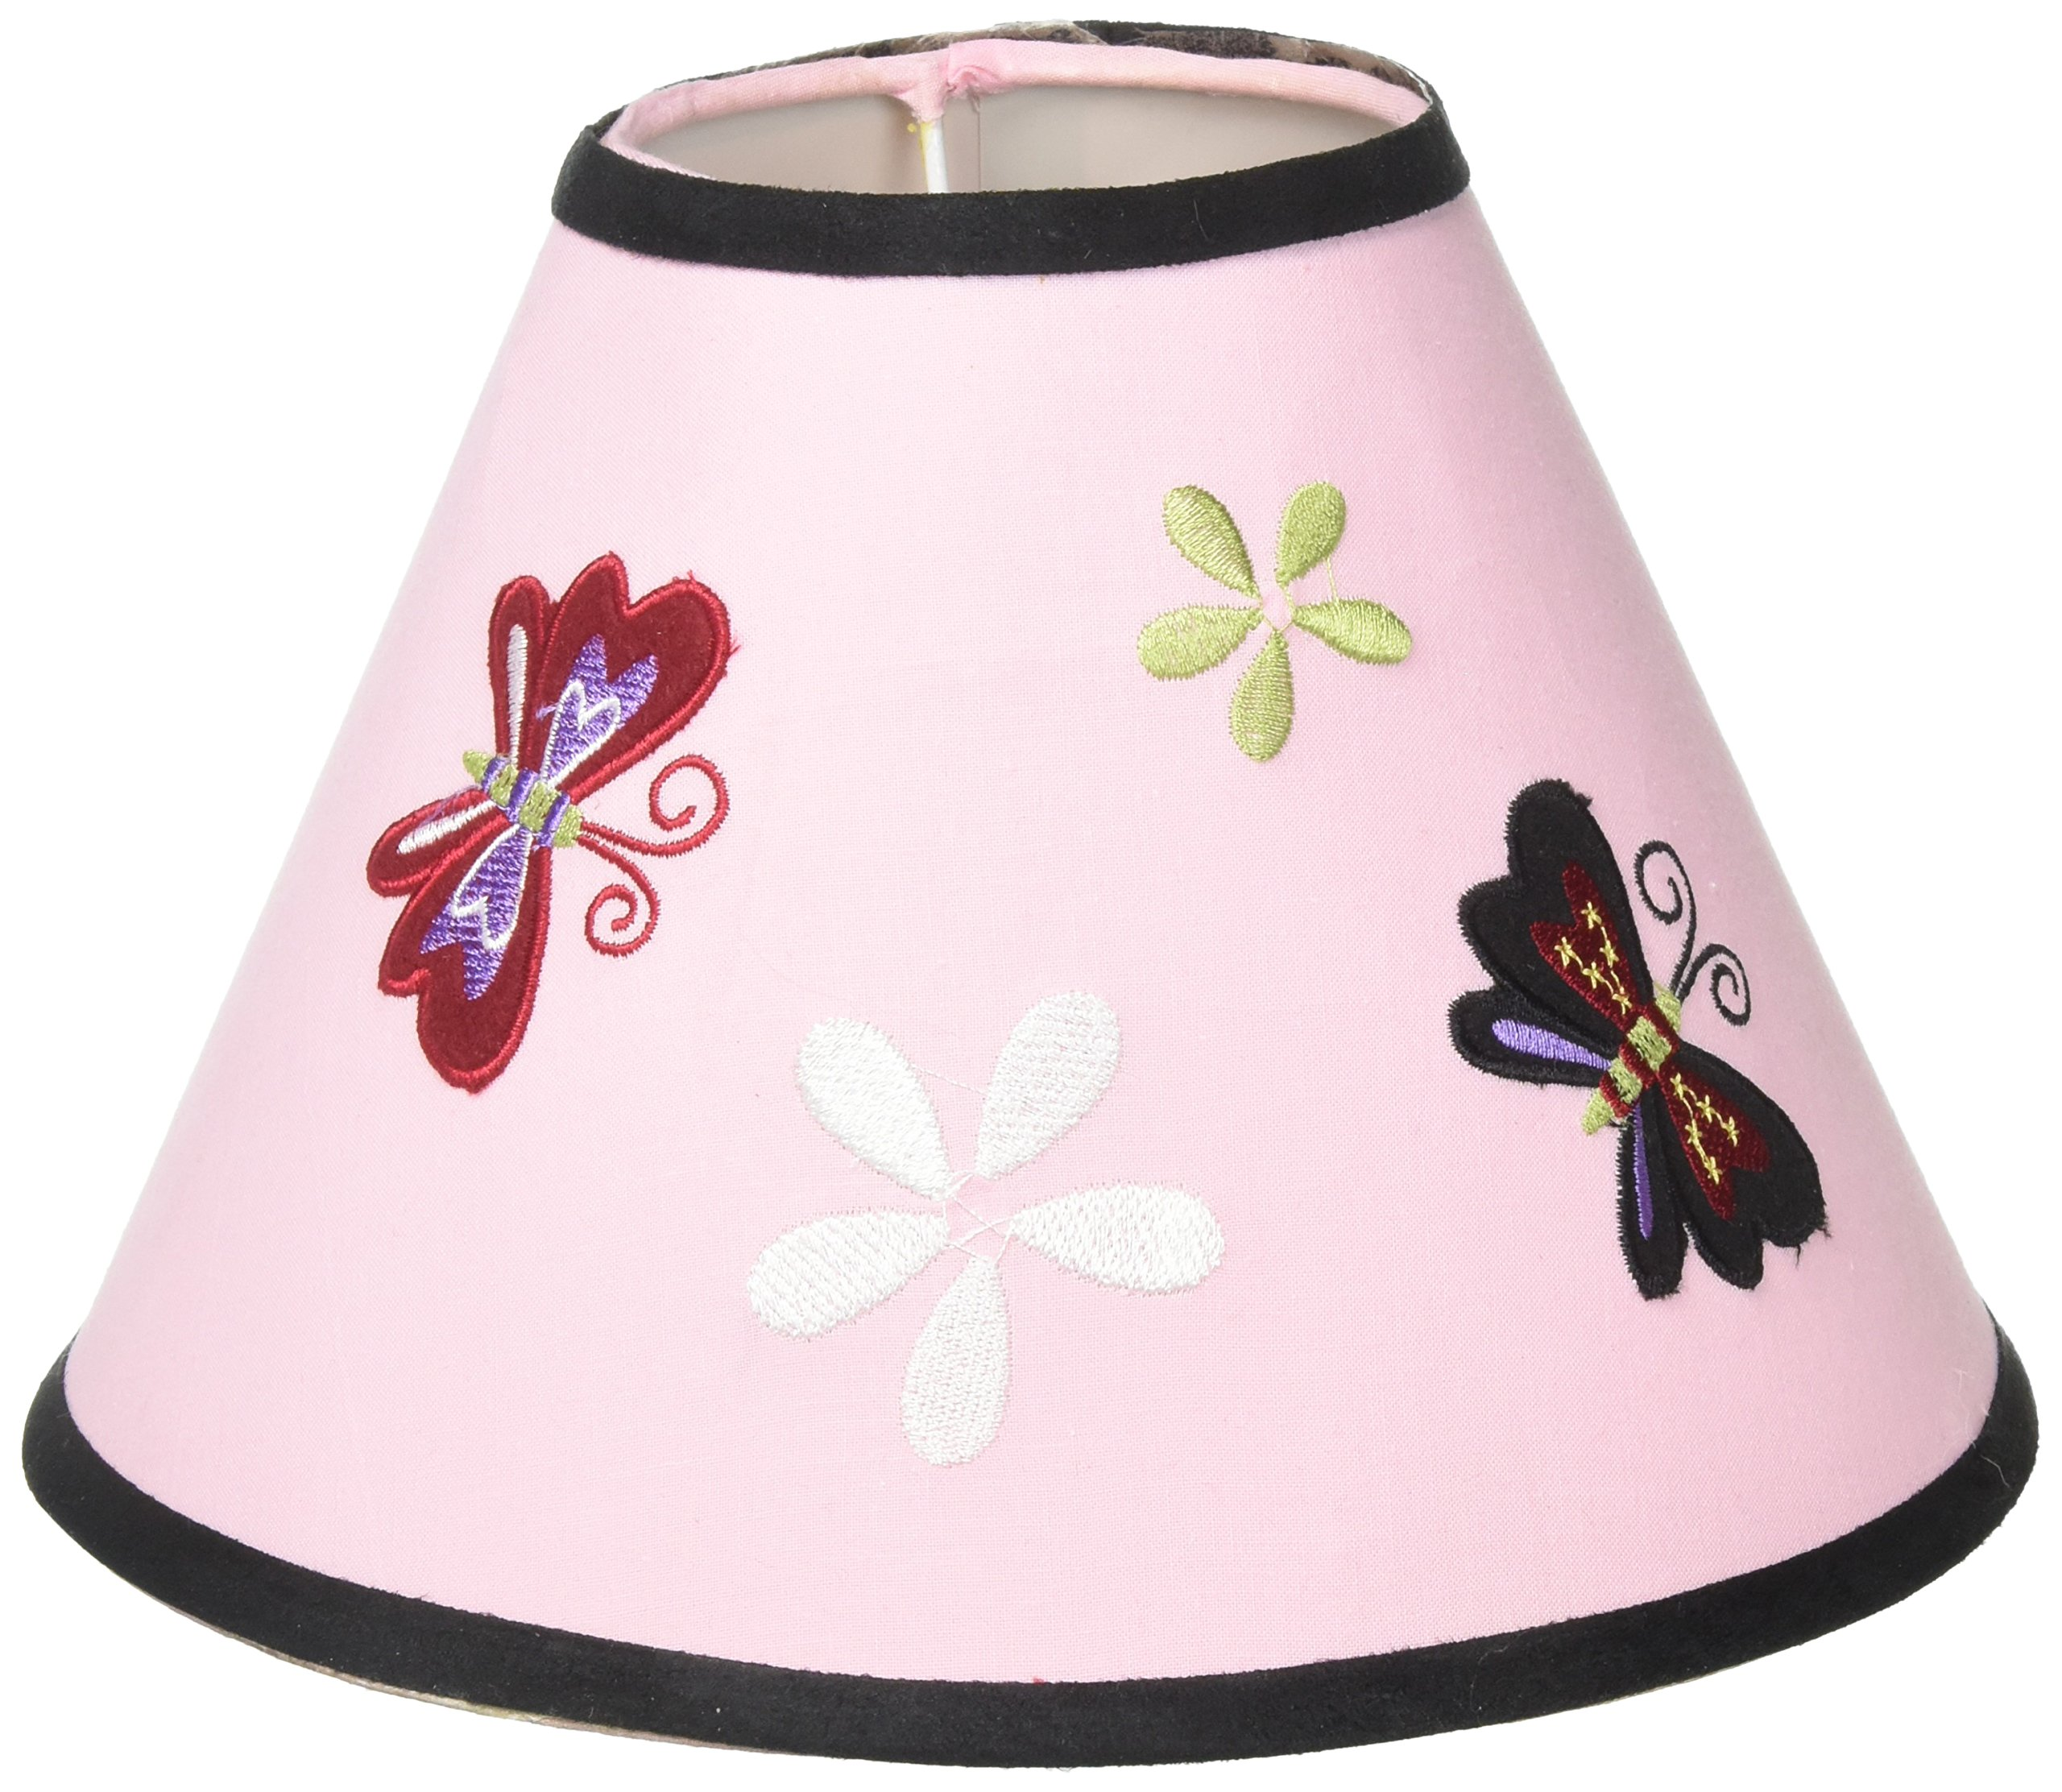 GEENNY Lamp Shade without Base, Daisy Garden